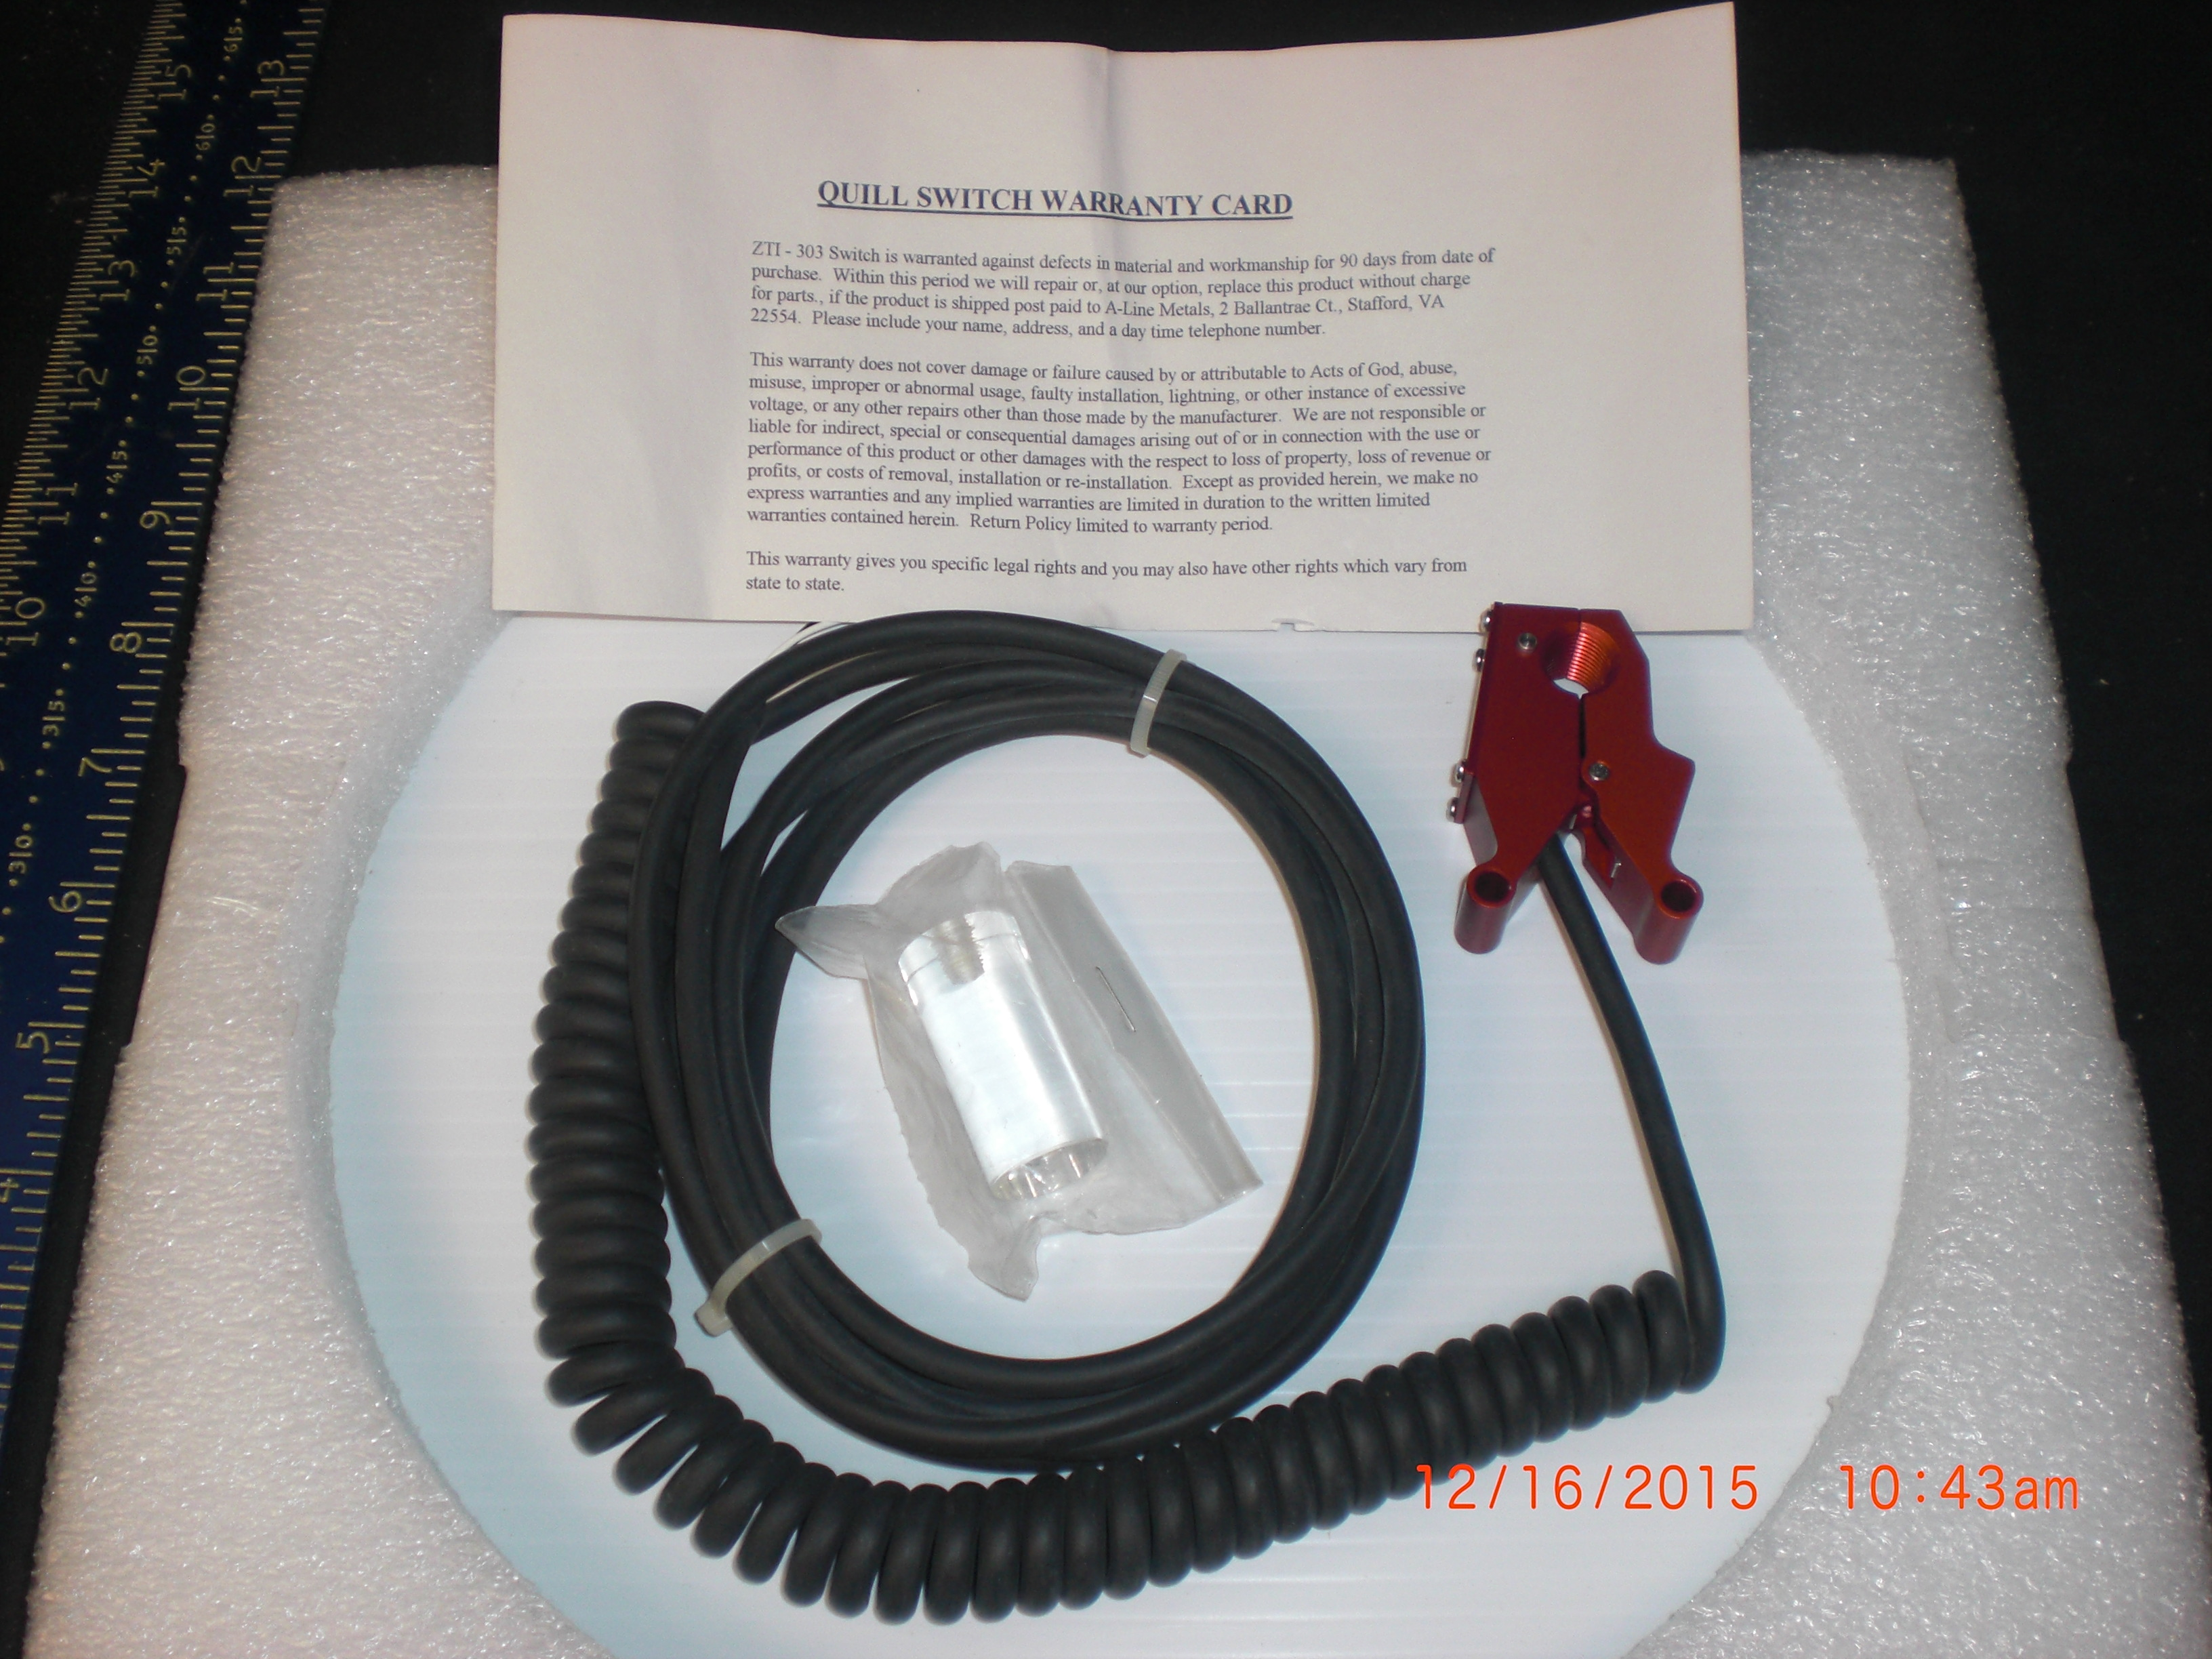 Sensor A-Line Metals  ZTI-303 Quill Current